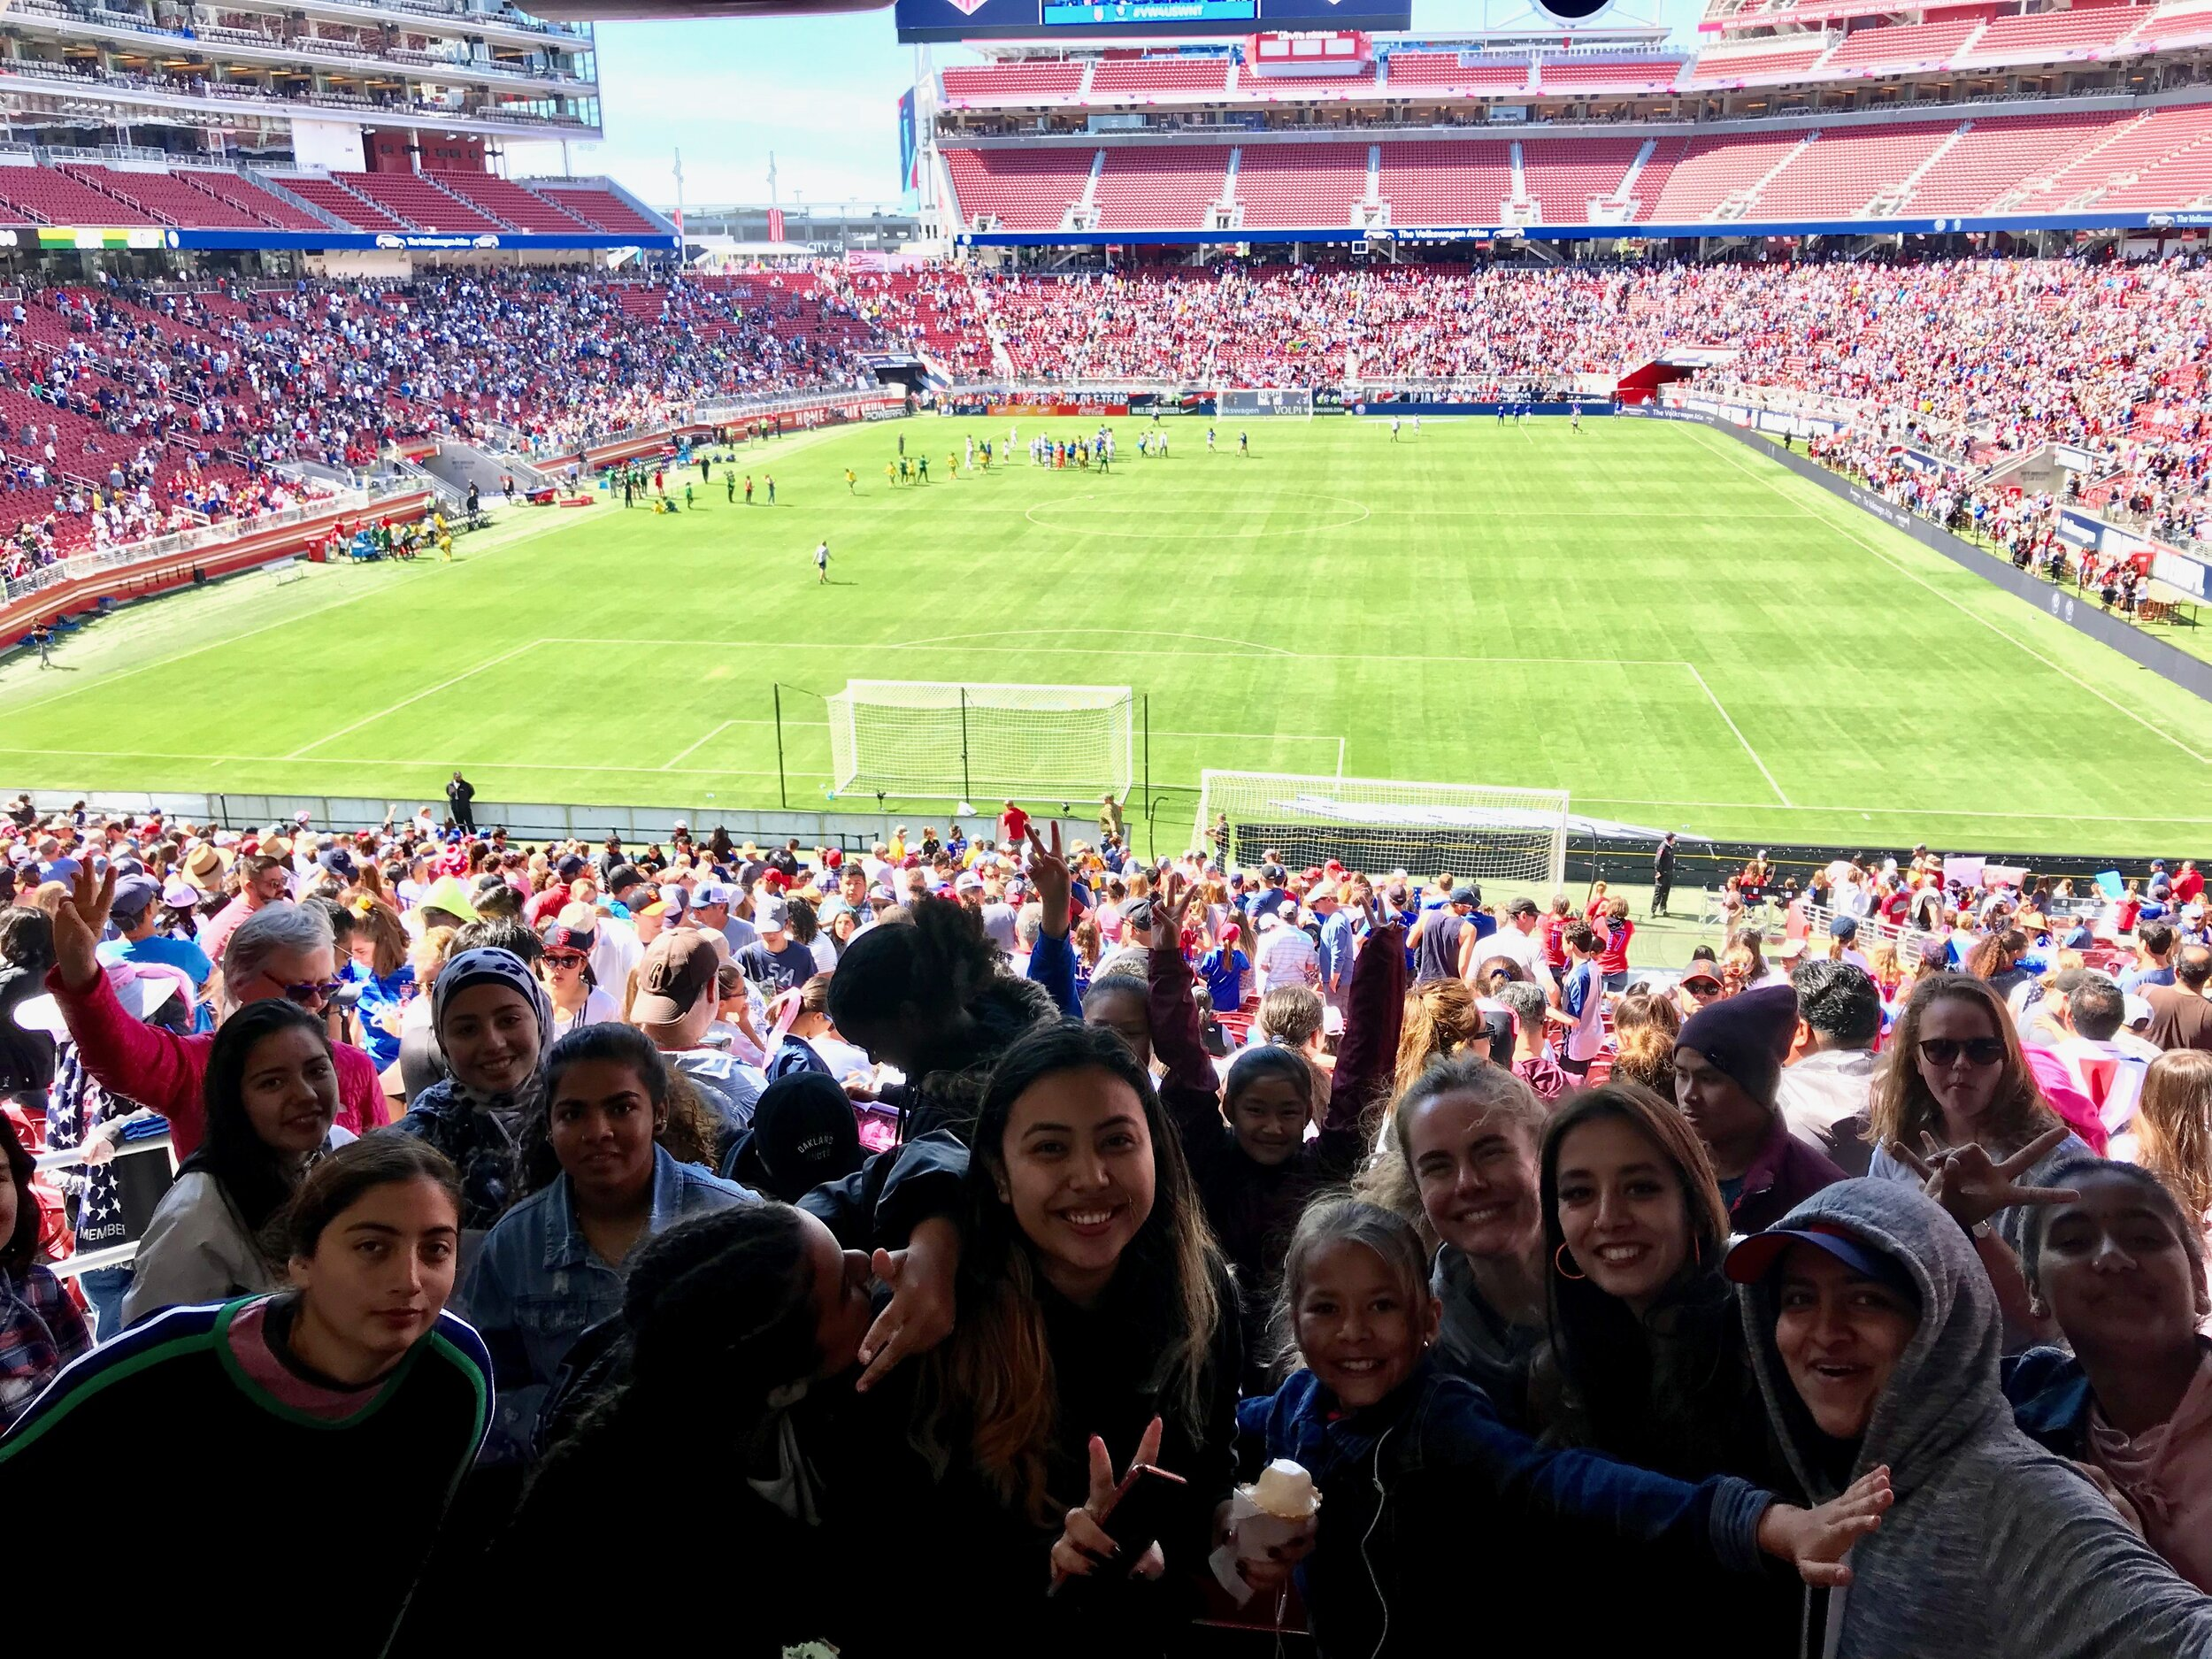 A mix of U14 and U19 girls, watching the U.S. Women's National Team play South Africa at Levi's Stadium